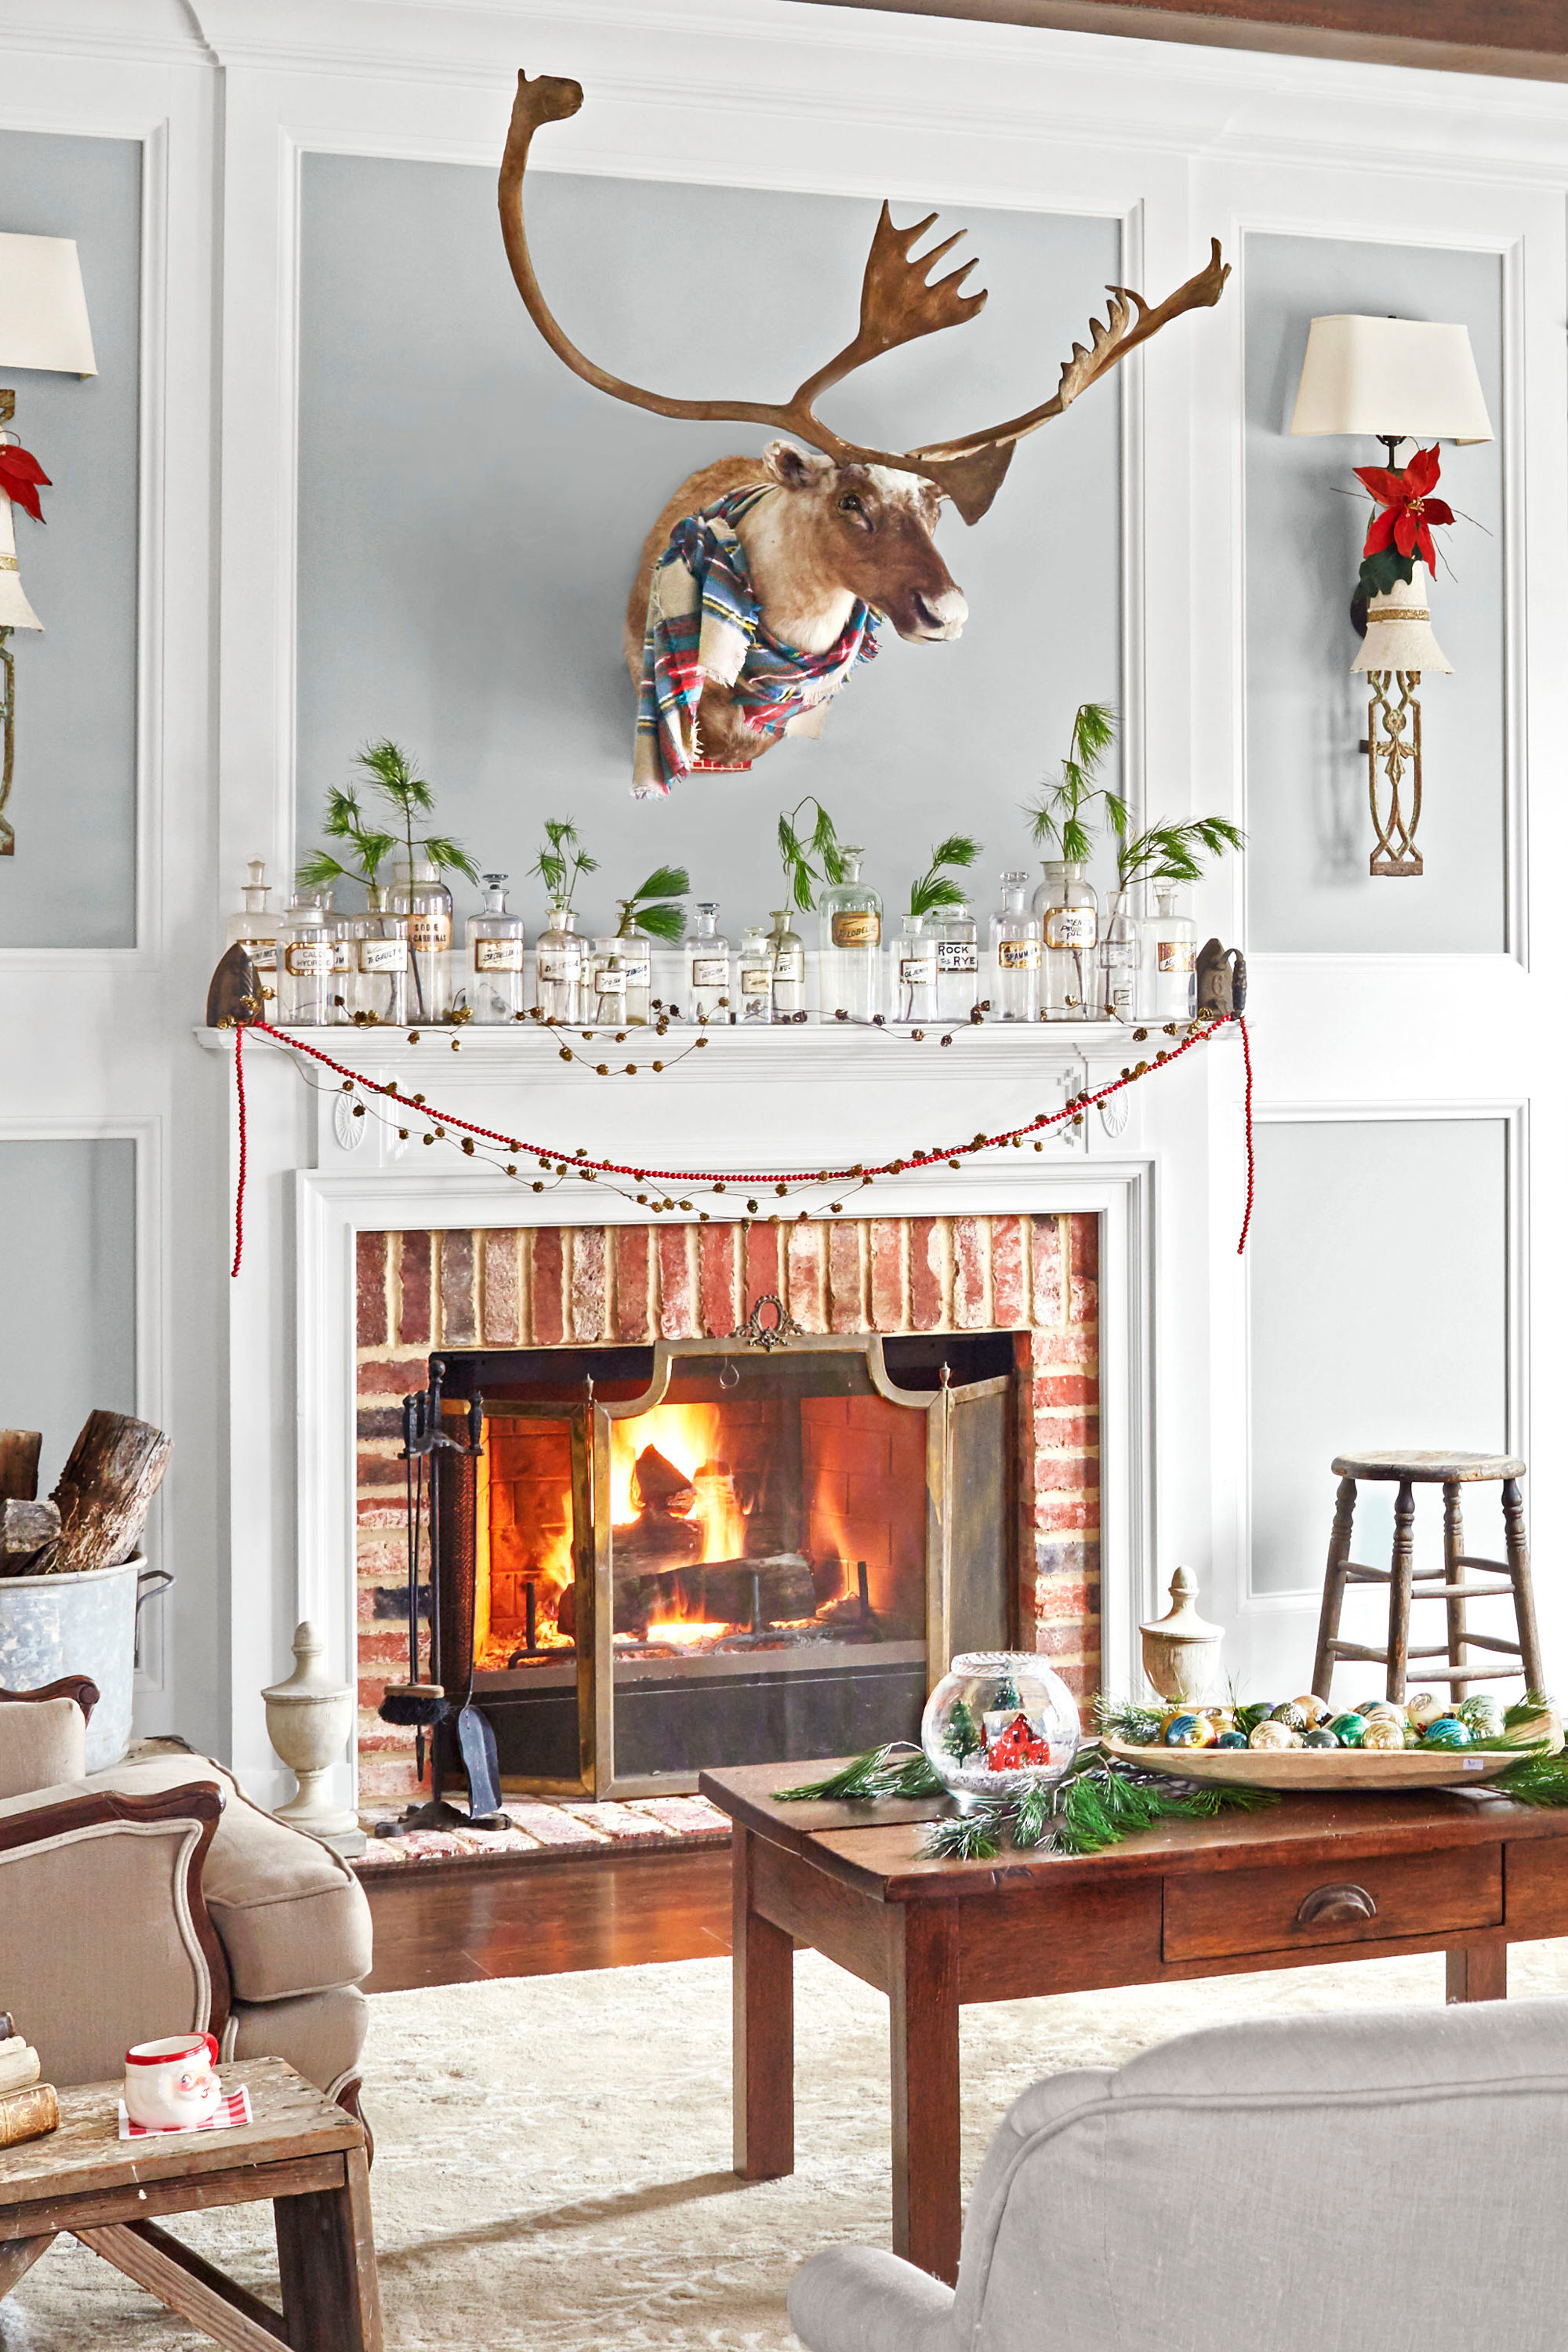 Design Fireplace Decorating Ideas 38 christmas mantel decorations ideas for holiday fireplace decorating